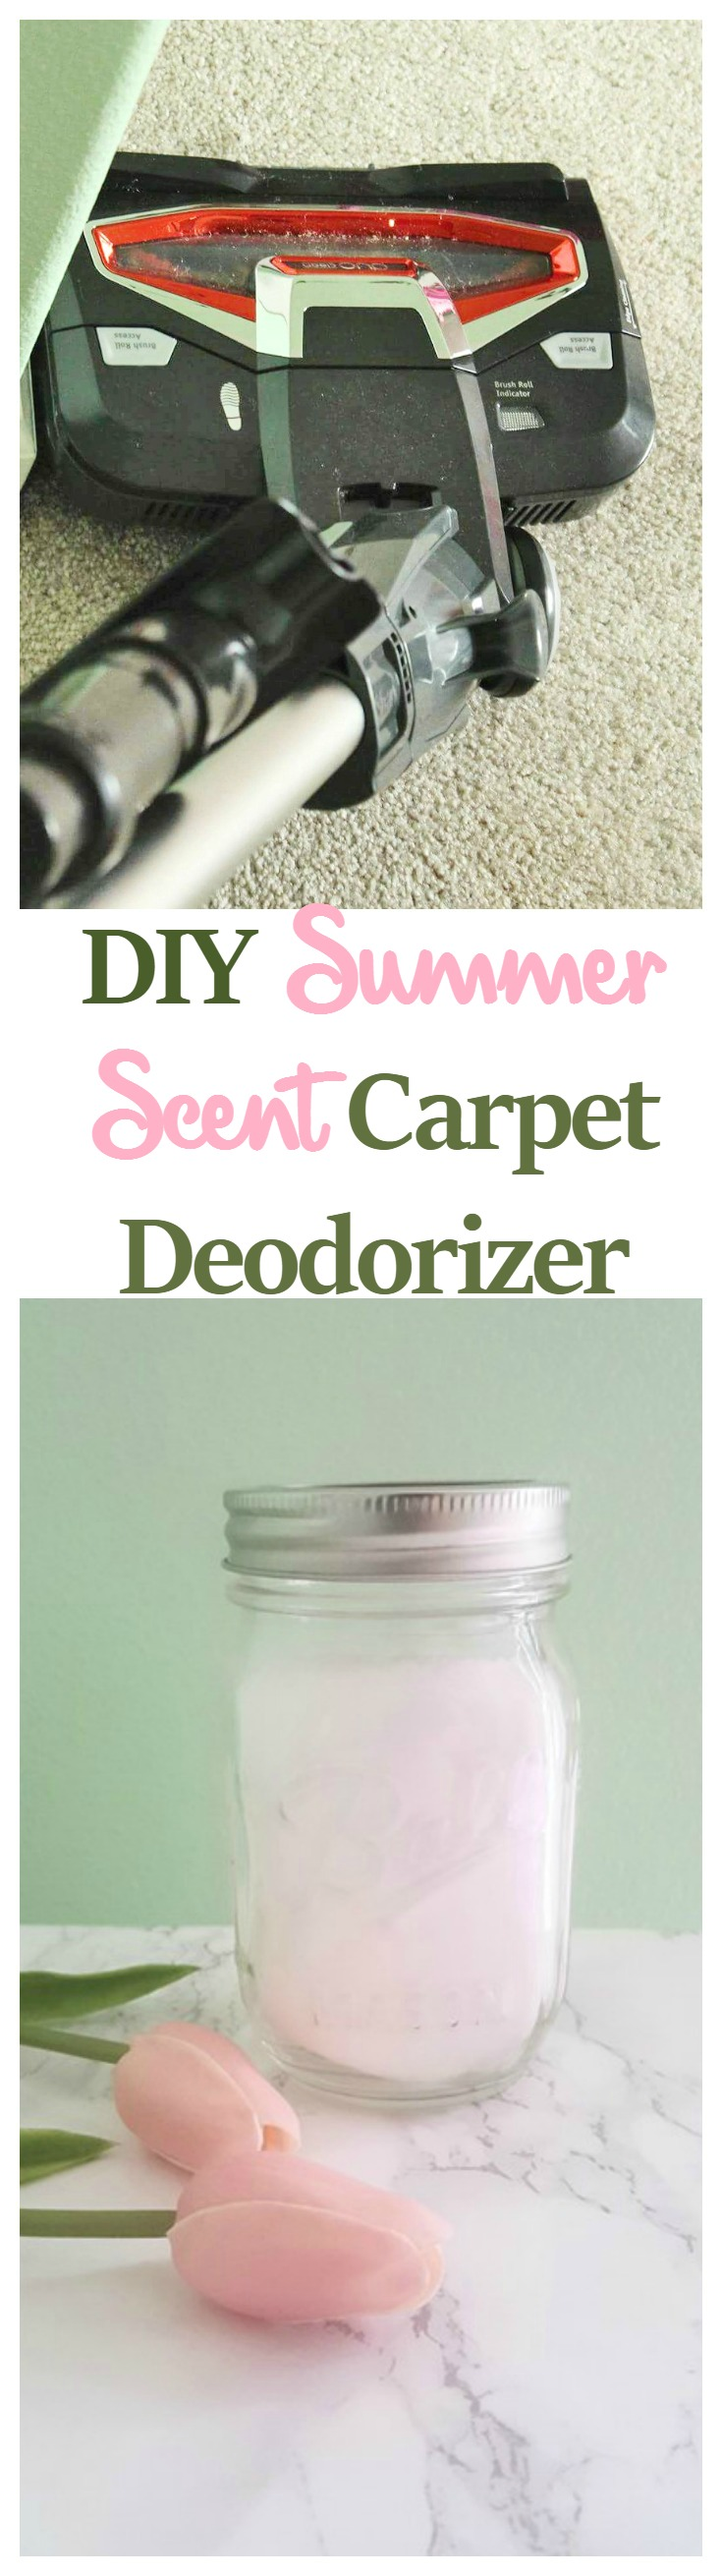 DIY Summer Scent Carpet Deodorizer